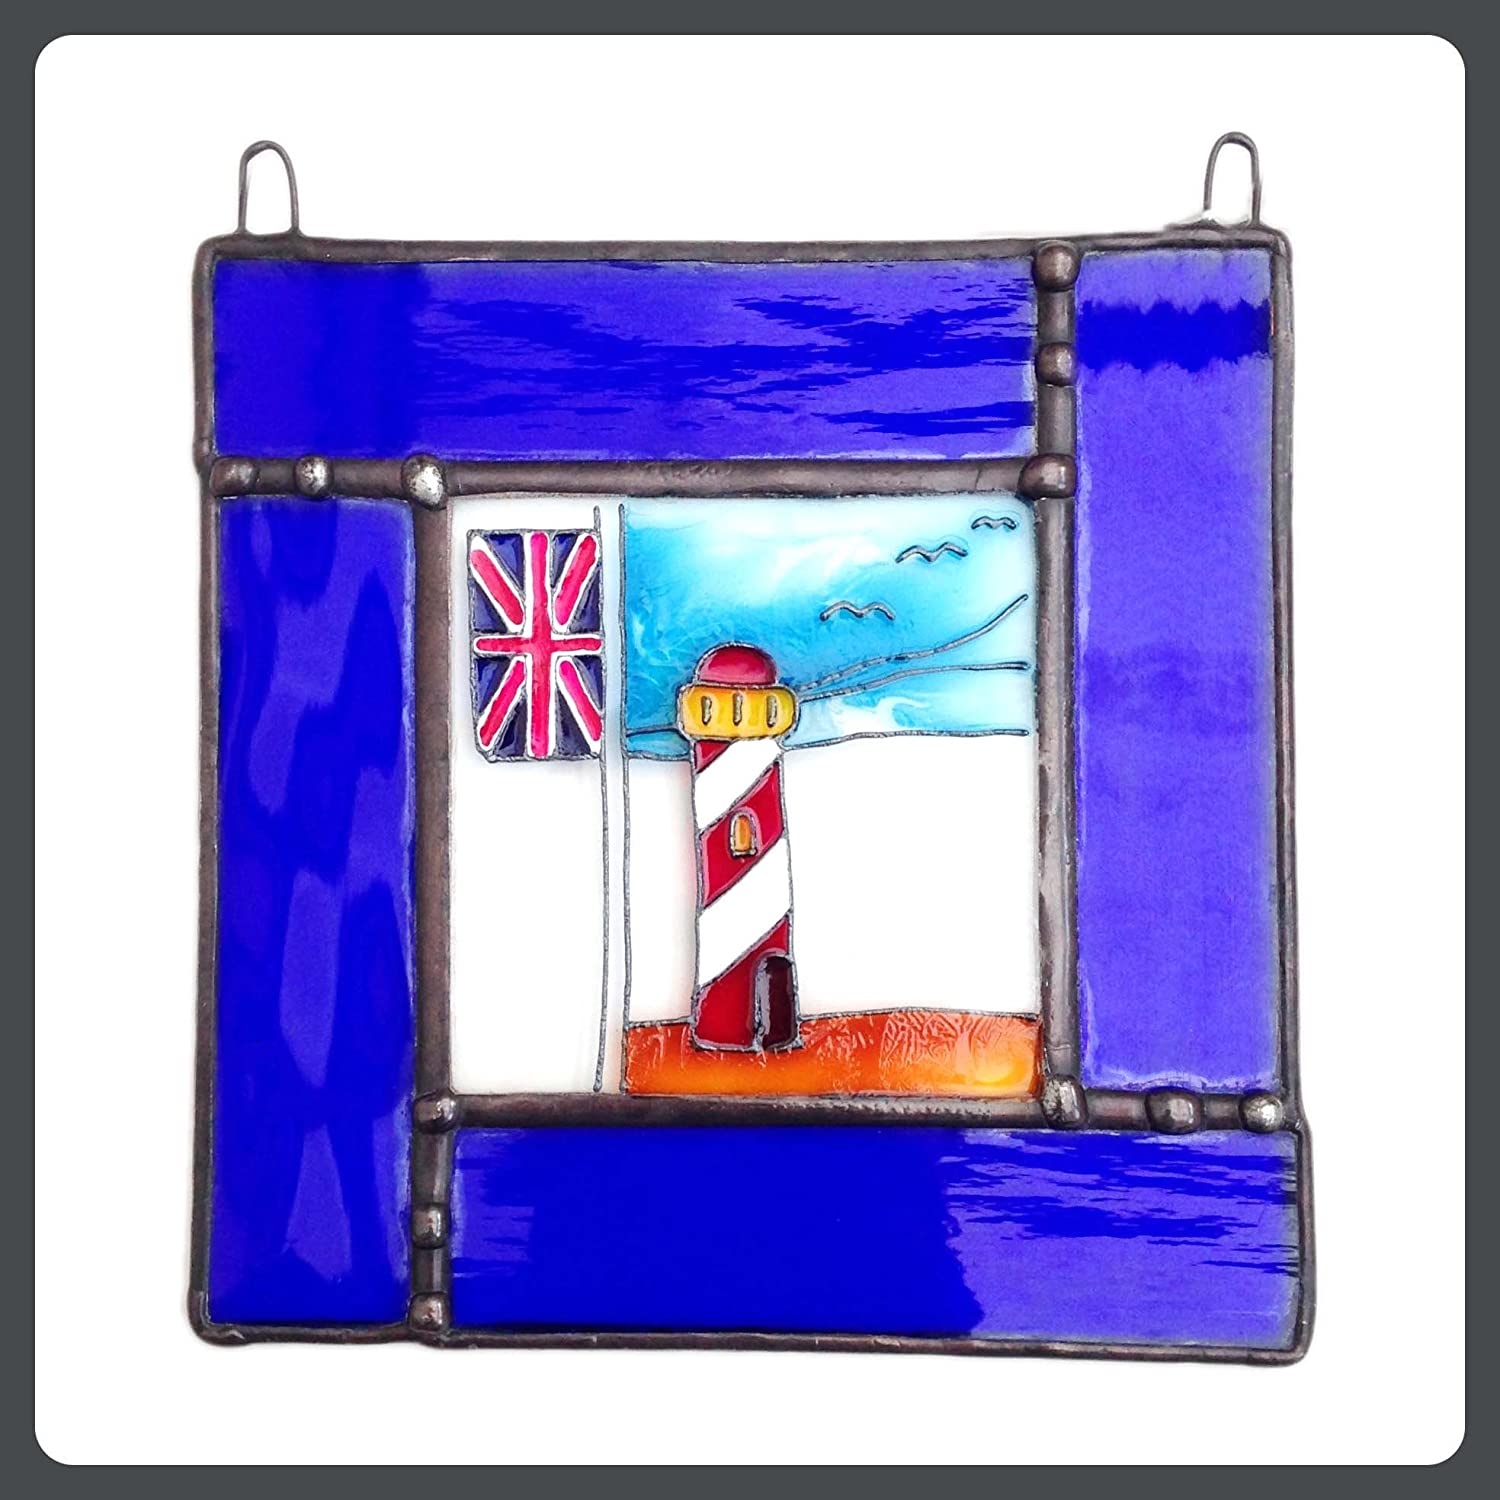 Lekoky BEACH HUTS Stained Glass, Hand Painted Sun Catcher, Gift, Window Decoration, Art Glassware, Hand Crafted in South of England Lenka's Terrariums